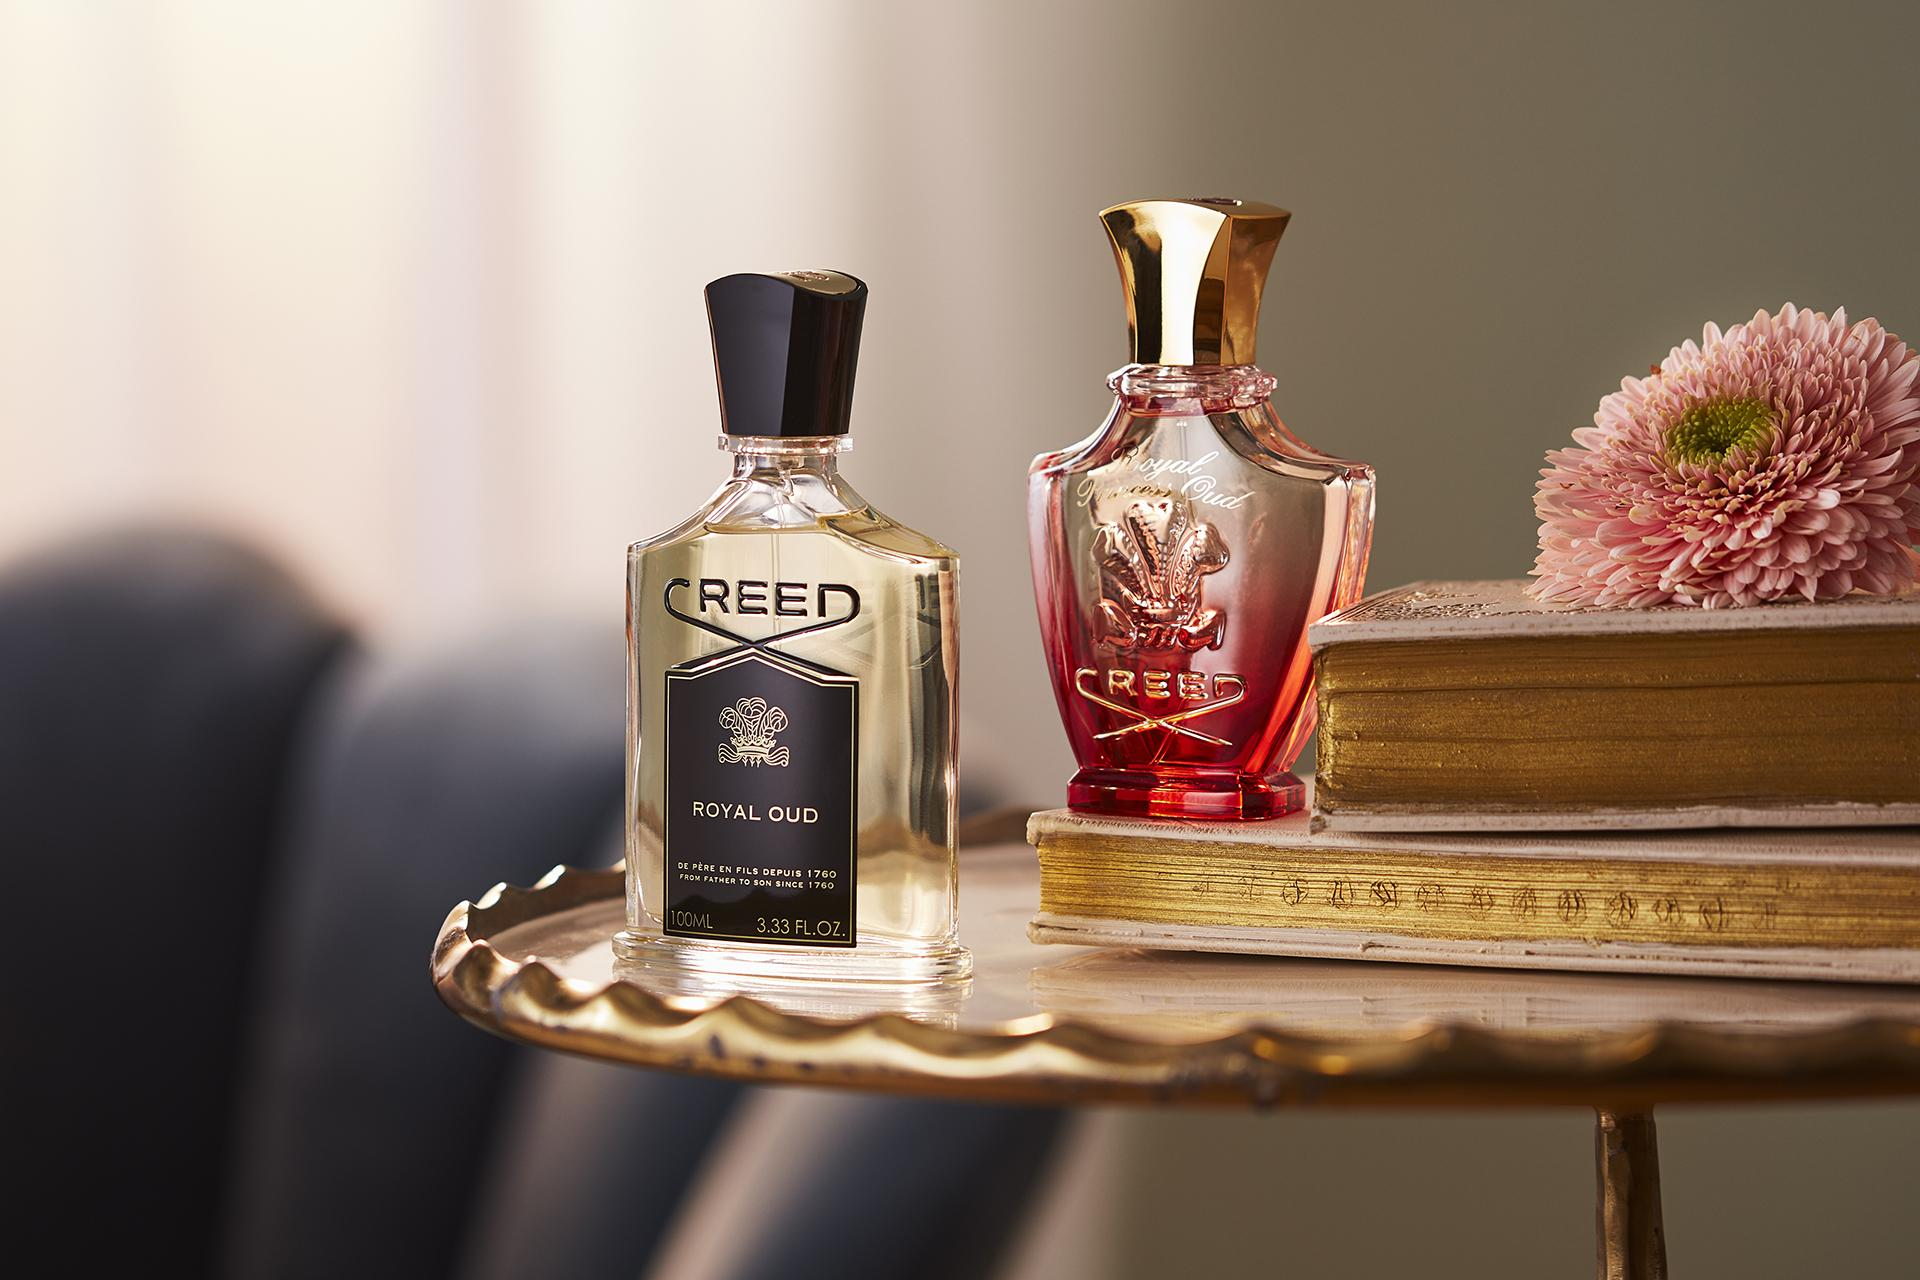 House of Creed's Royal Oud and Royal Princess Oud